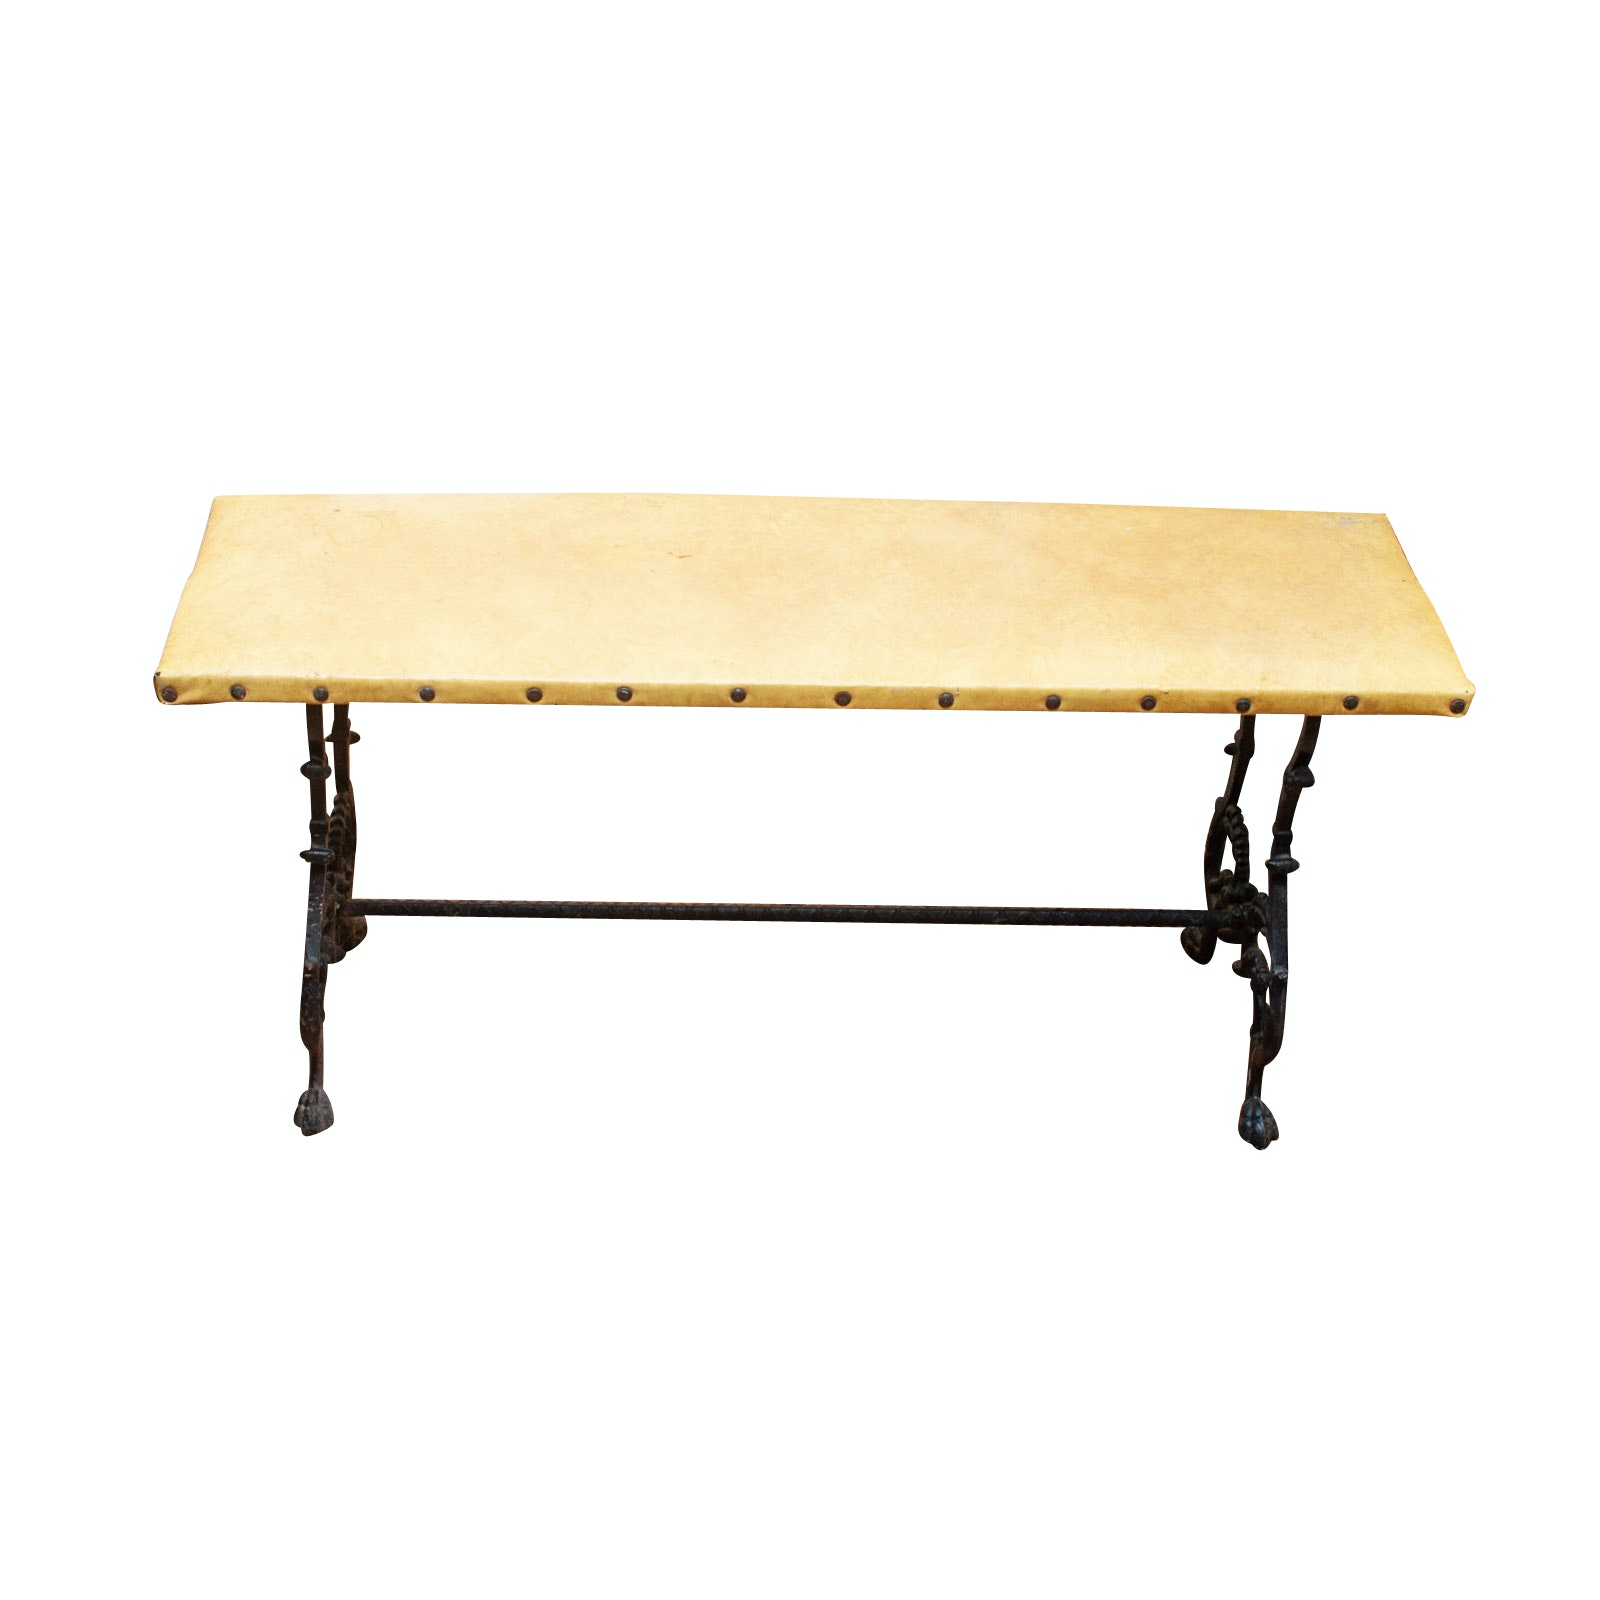 Antique Wrought Iron and Wood Re-Upholstered Bench